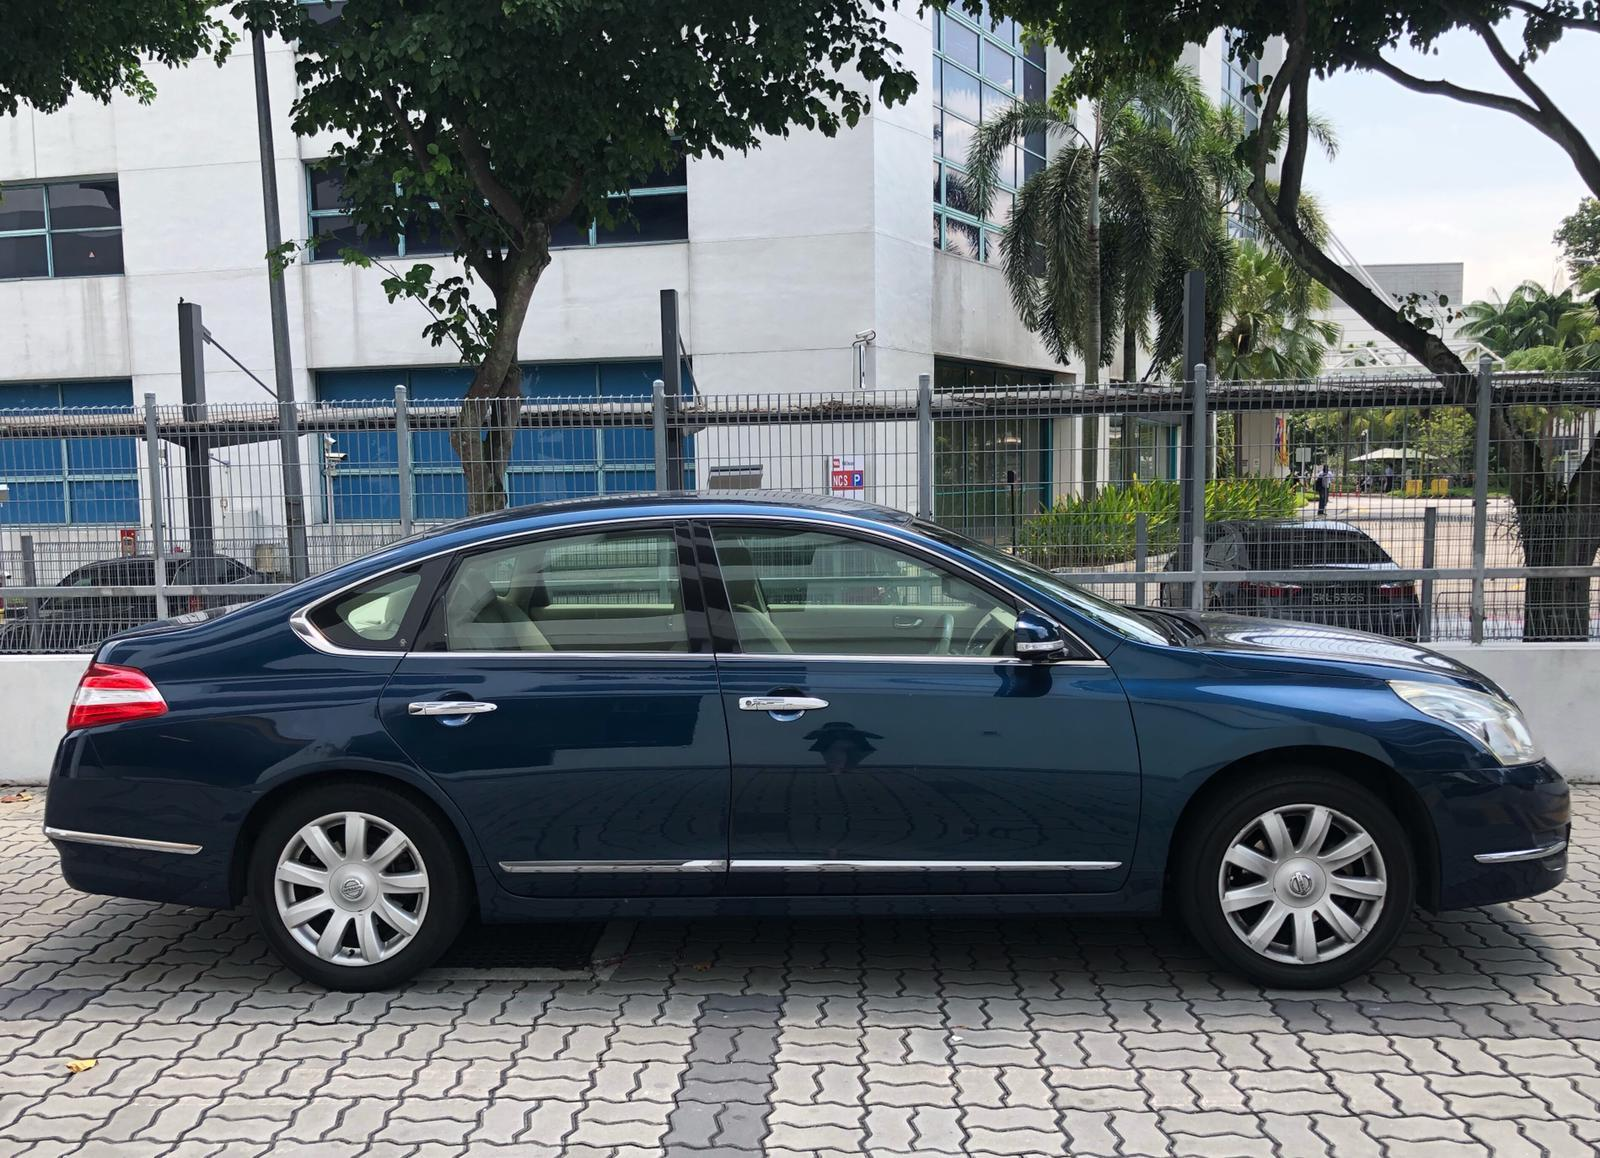 Nissan Teana camry allion altis vios for rent Grab Rental Gojek Or Personal Use low price and CHEAPEST RENTAL